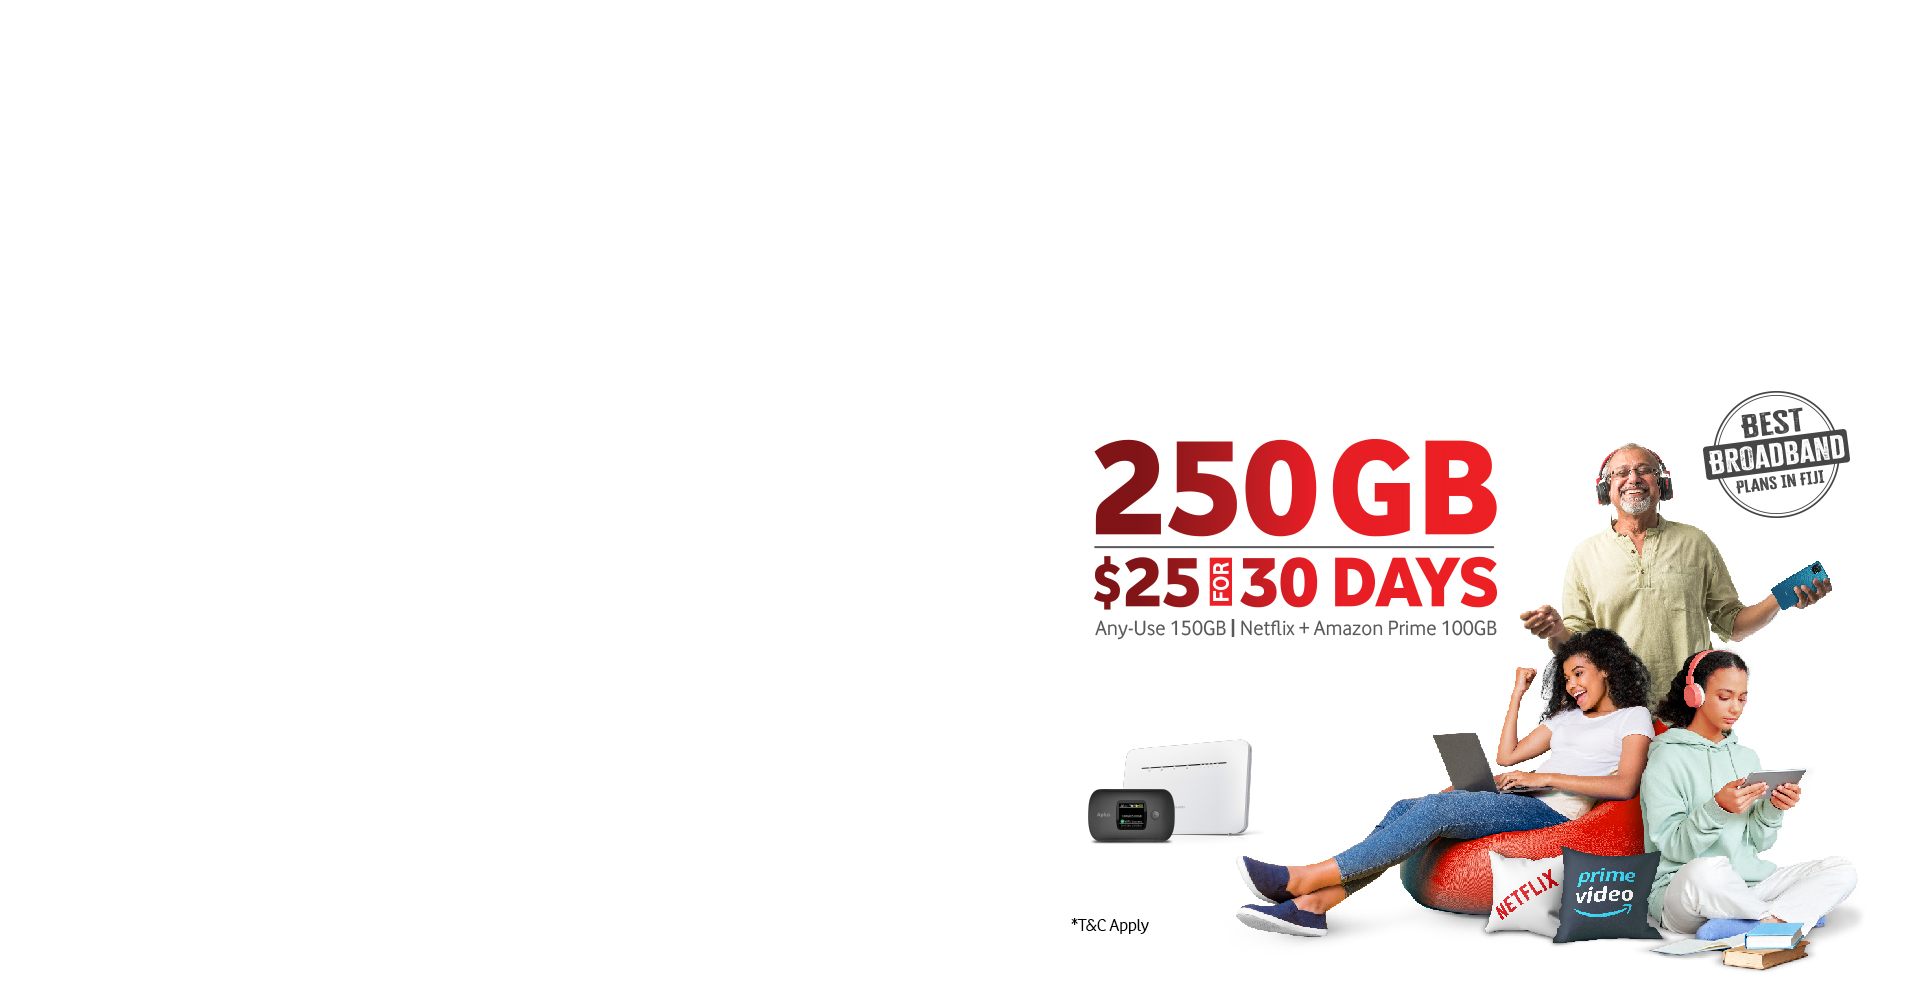 250GB - $25 for 30 Days